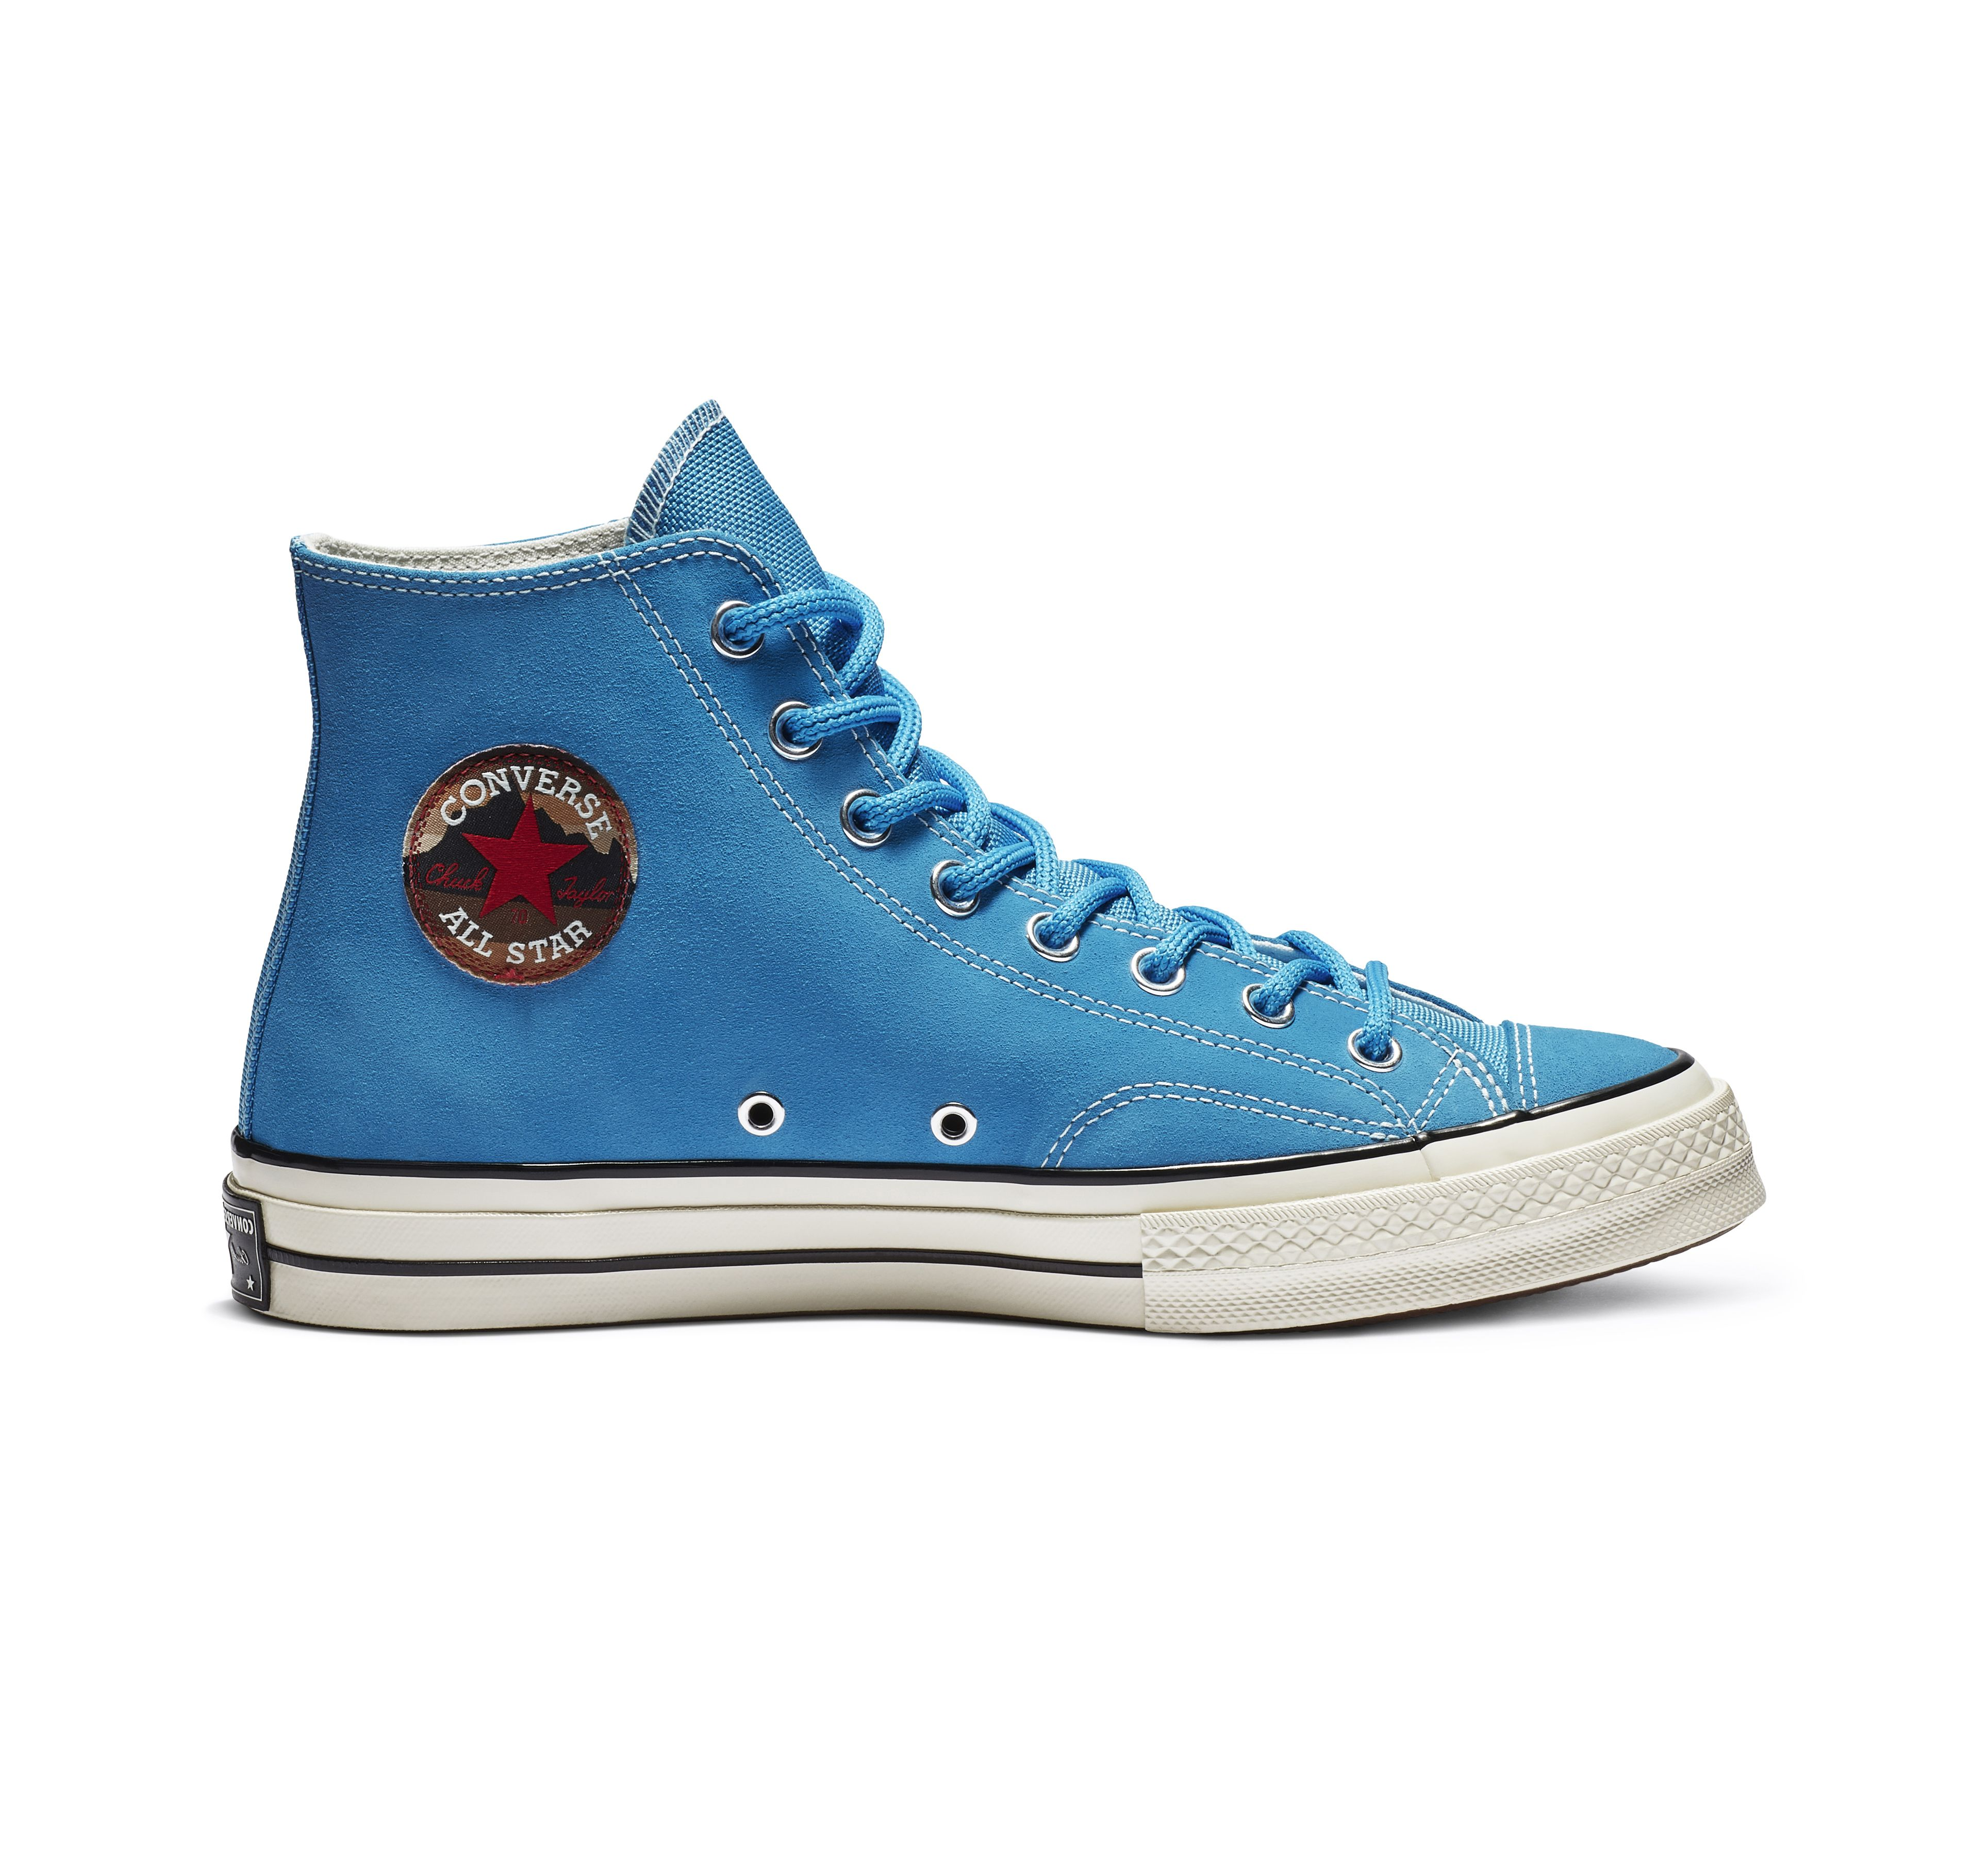 Chuck 70 Base Camp Suede High Top | Suede high tops, Converse ...